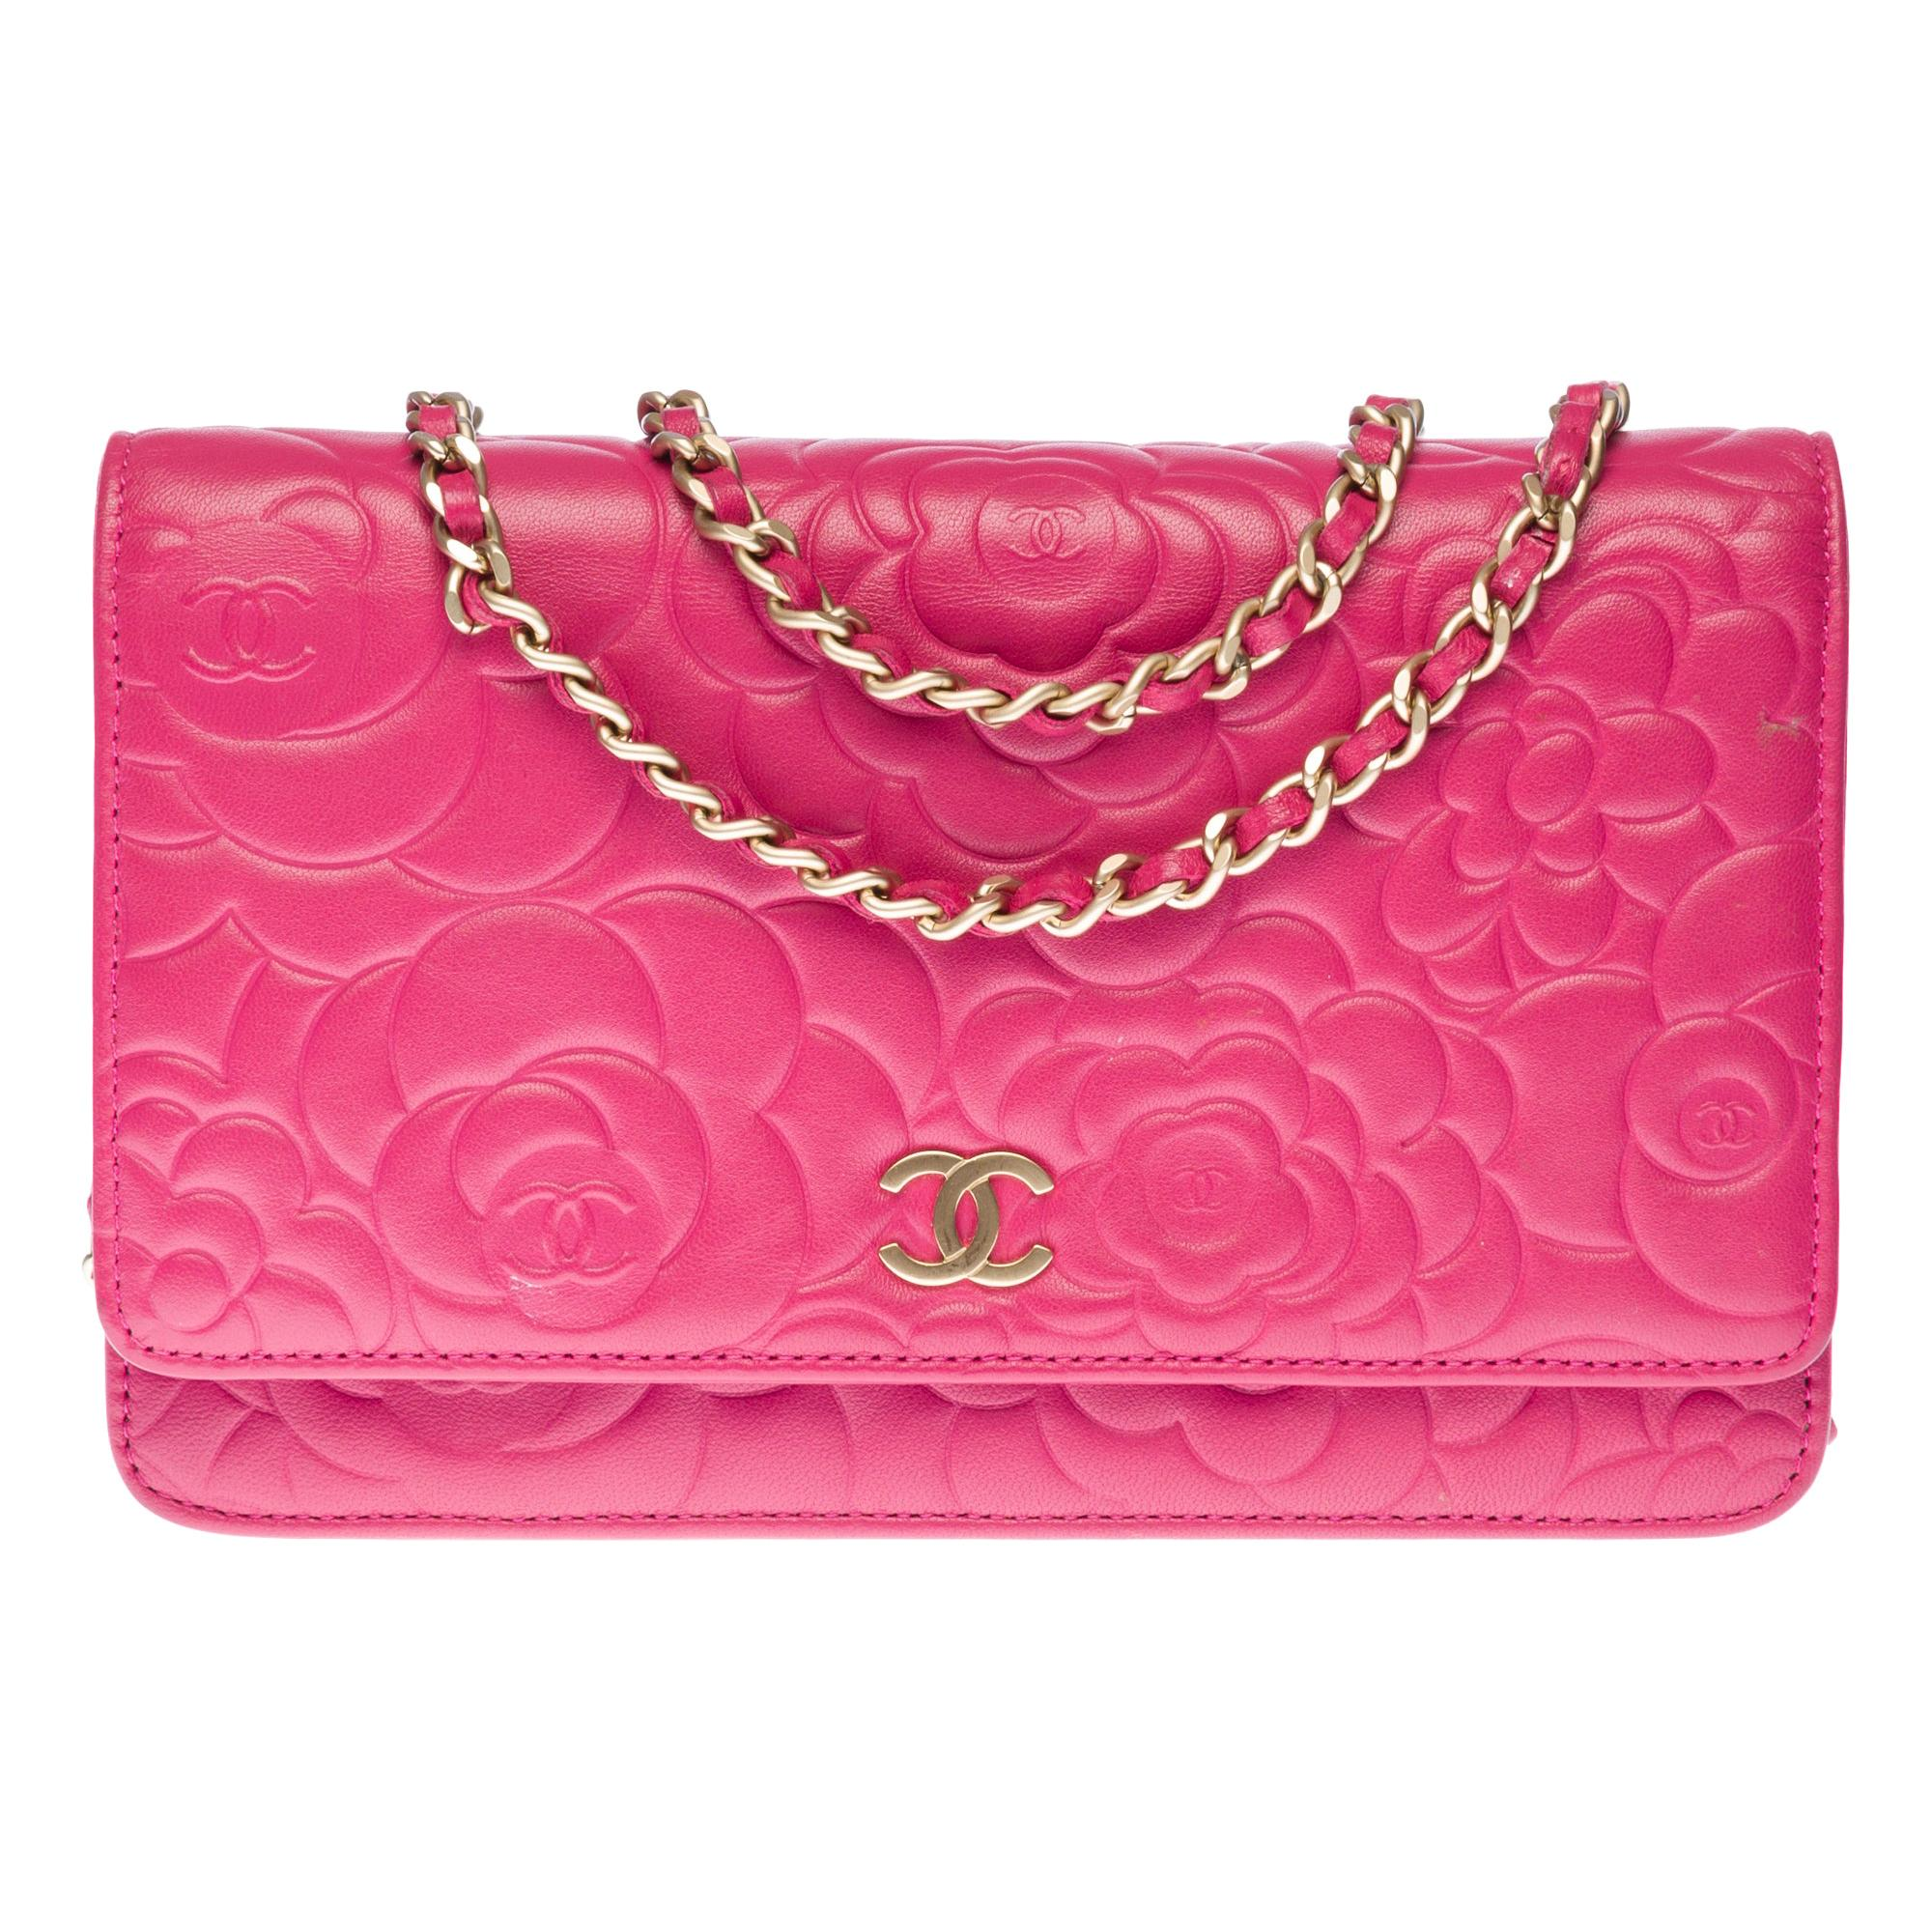 Chanel Wallet on Chain (WOC) Camelia shoulder bag in pink quilted leather, GHW